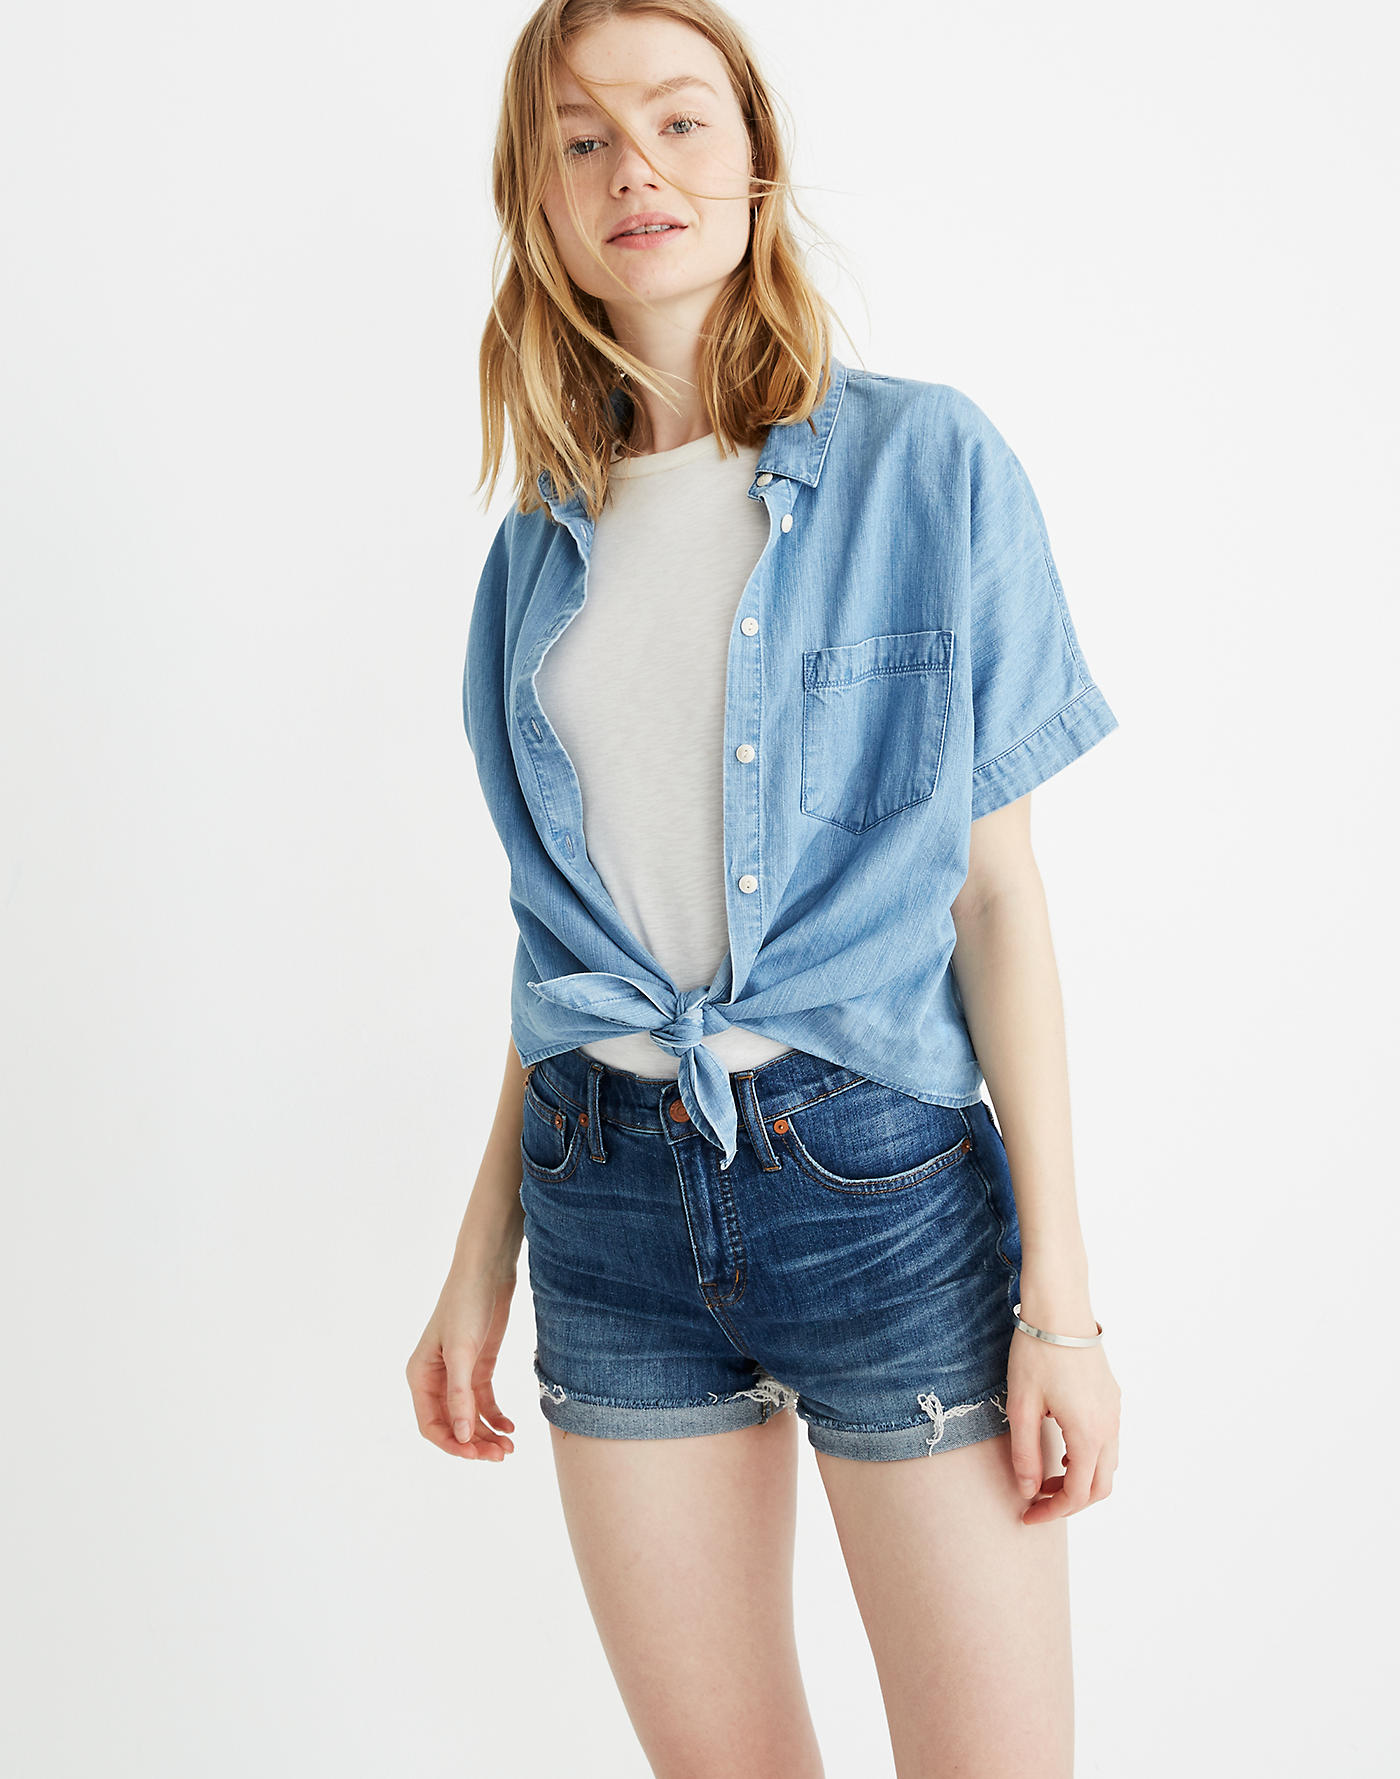 High-Rise Denim Shorts in Glenoaks Wash: Cutoff Edition - Use code SUNNY20 for 20% offSHOP IT NOW